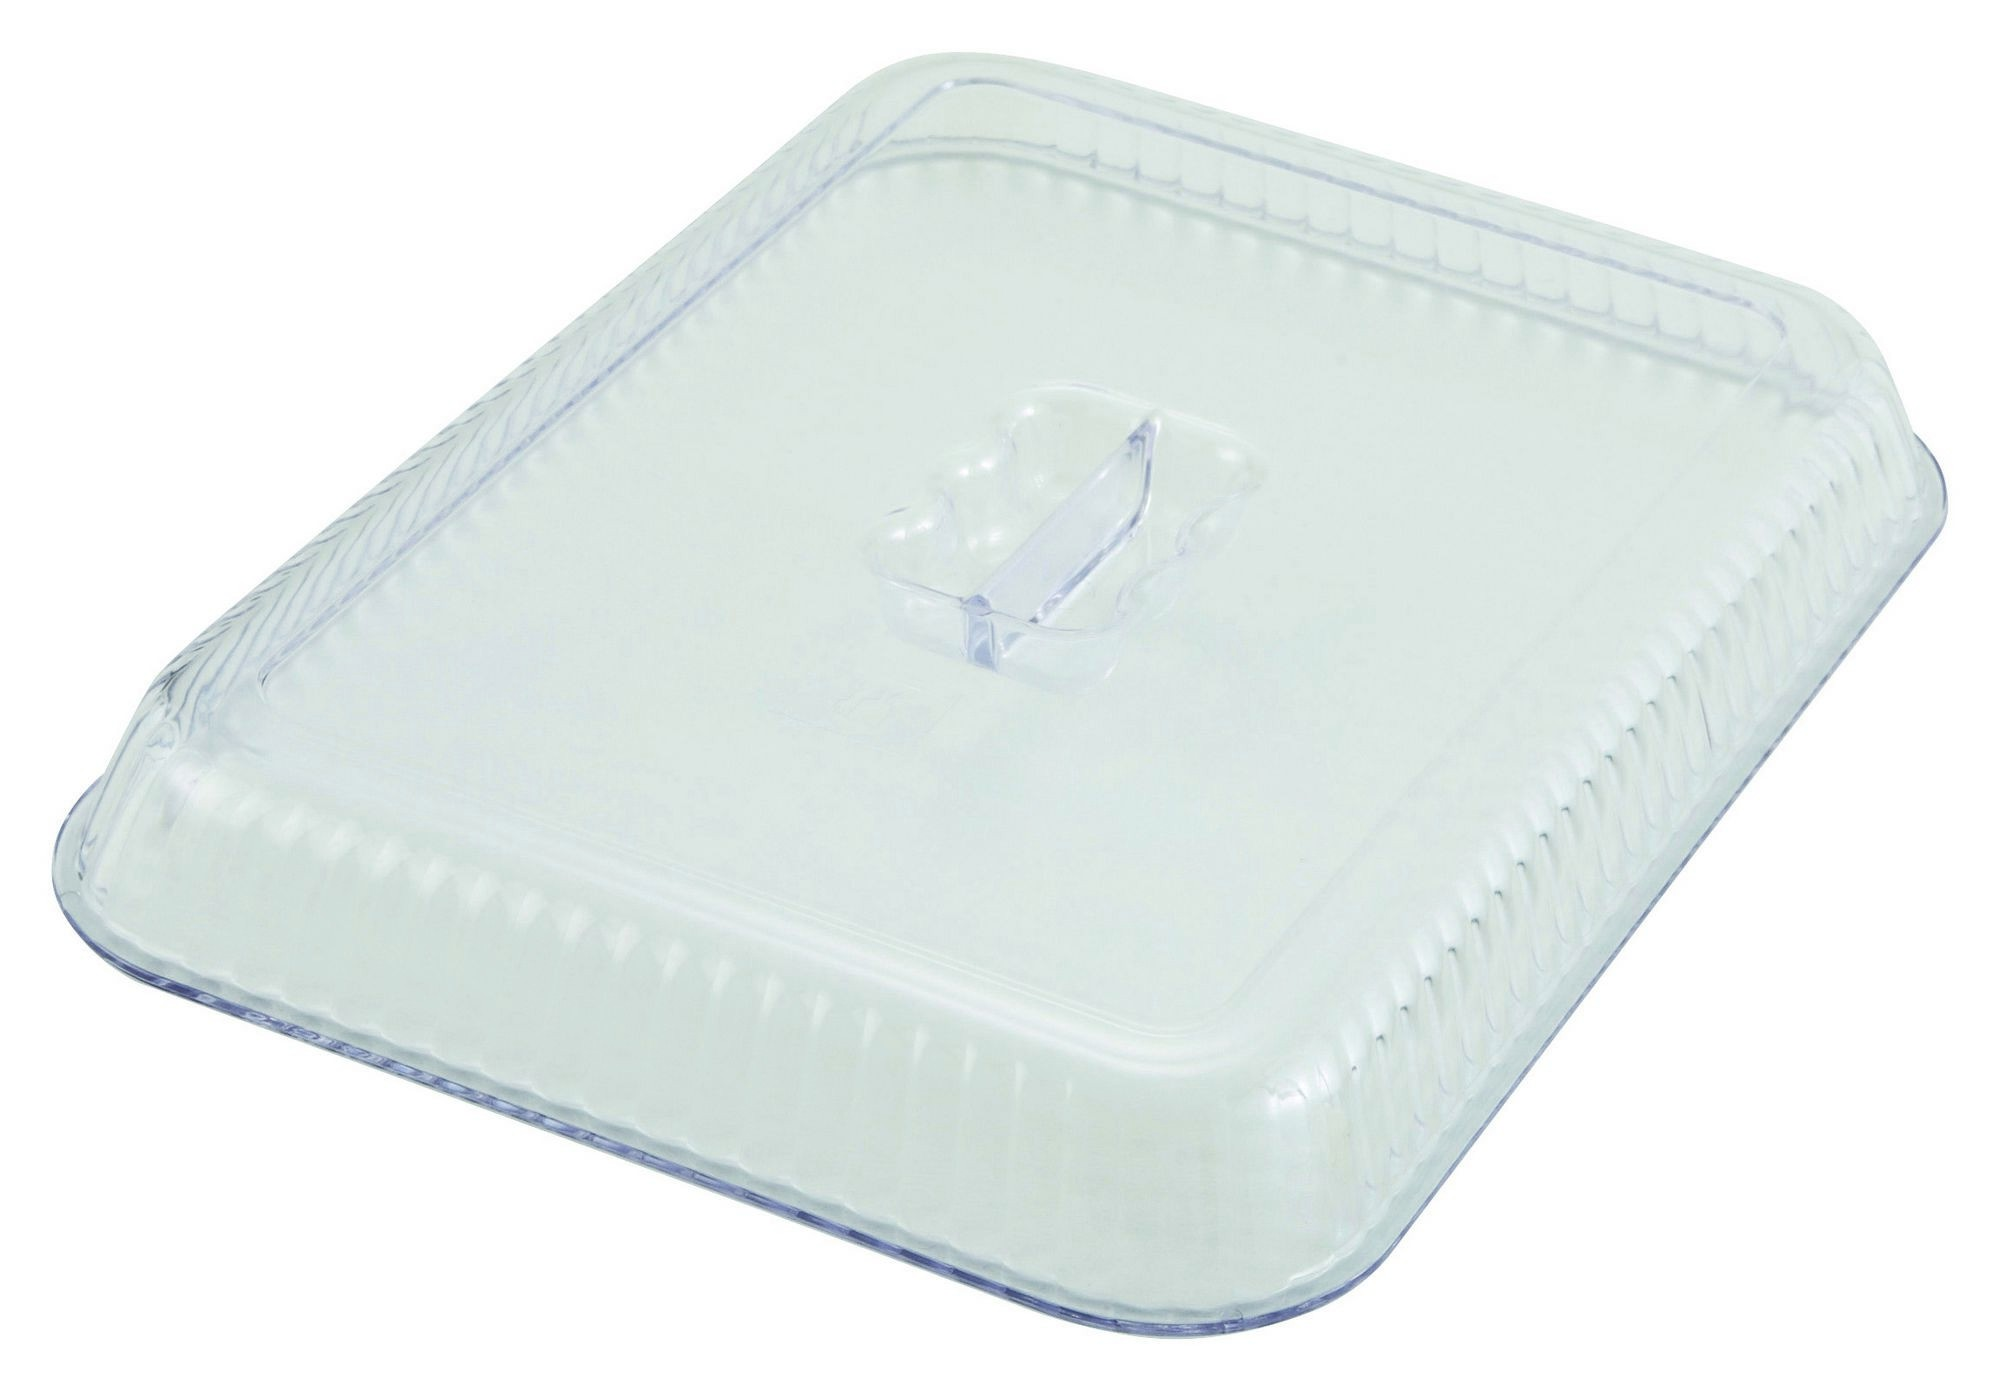 "Winco CRKC-13 Crock Cover for 13"" x 10"" Food Storage Container"